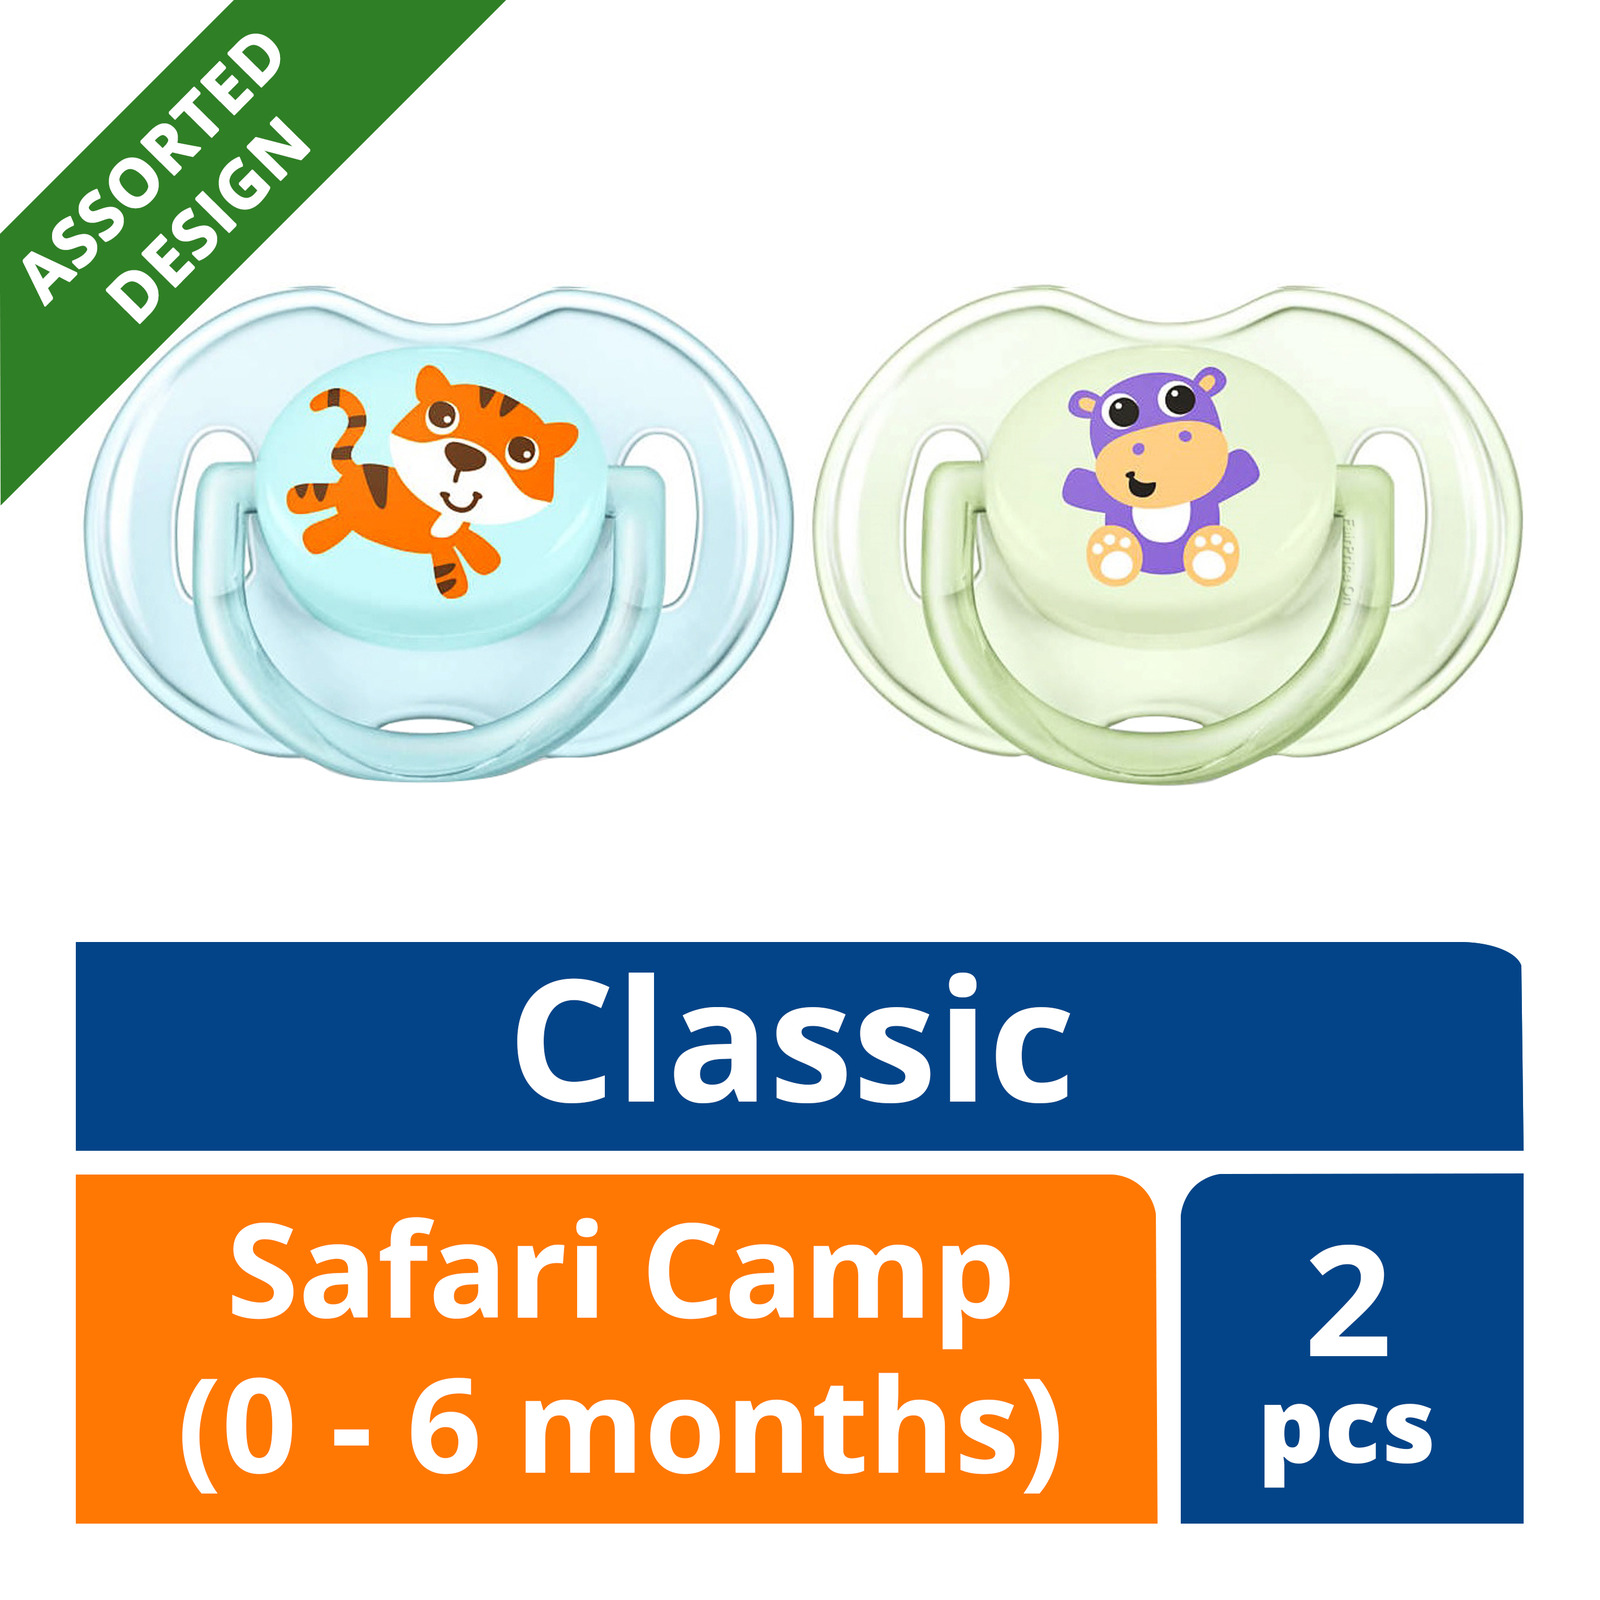 Philips Avent Classic Pacifier - SafariCamp (0 - 6 months)